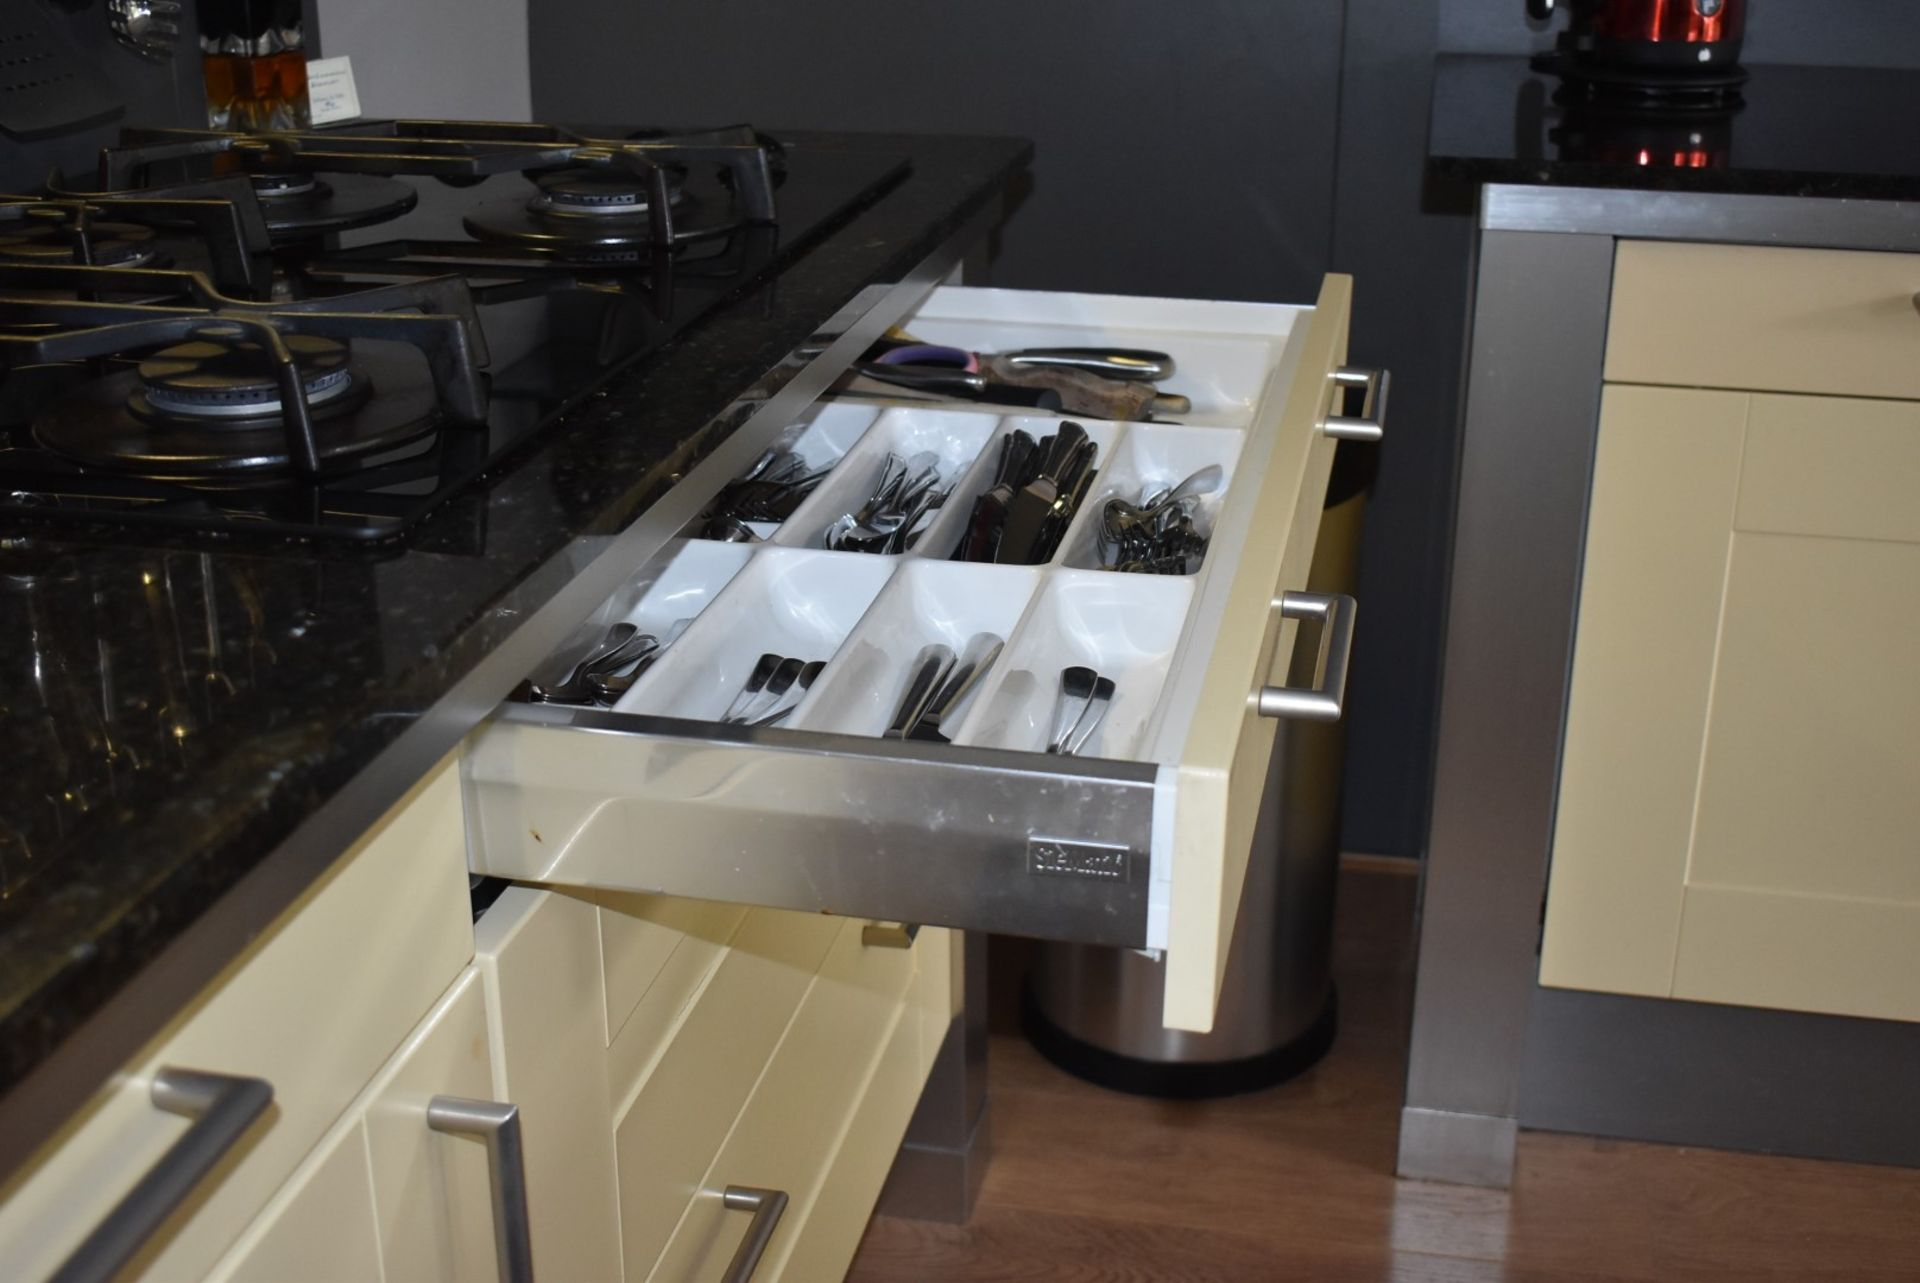 1 x SieMatic Contemporary Fitted Kitchen With Appliances - Features Shaker Style Doors, Central - Image 20 of 96